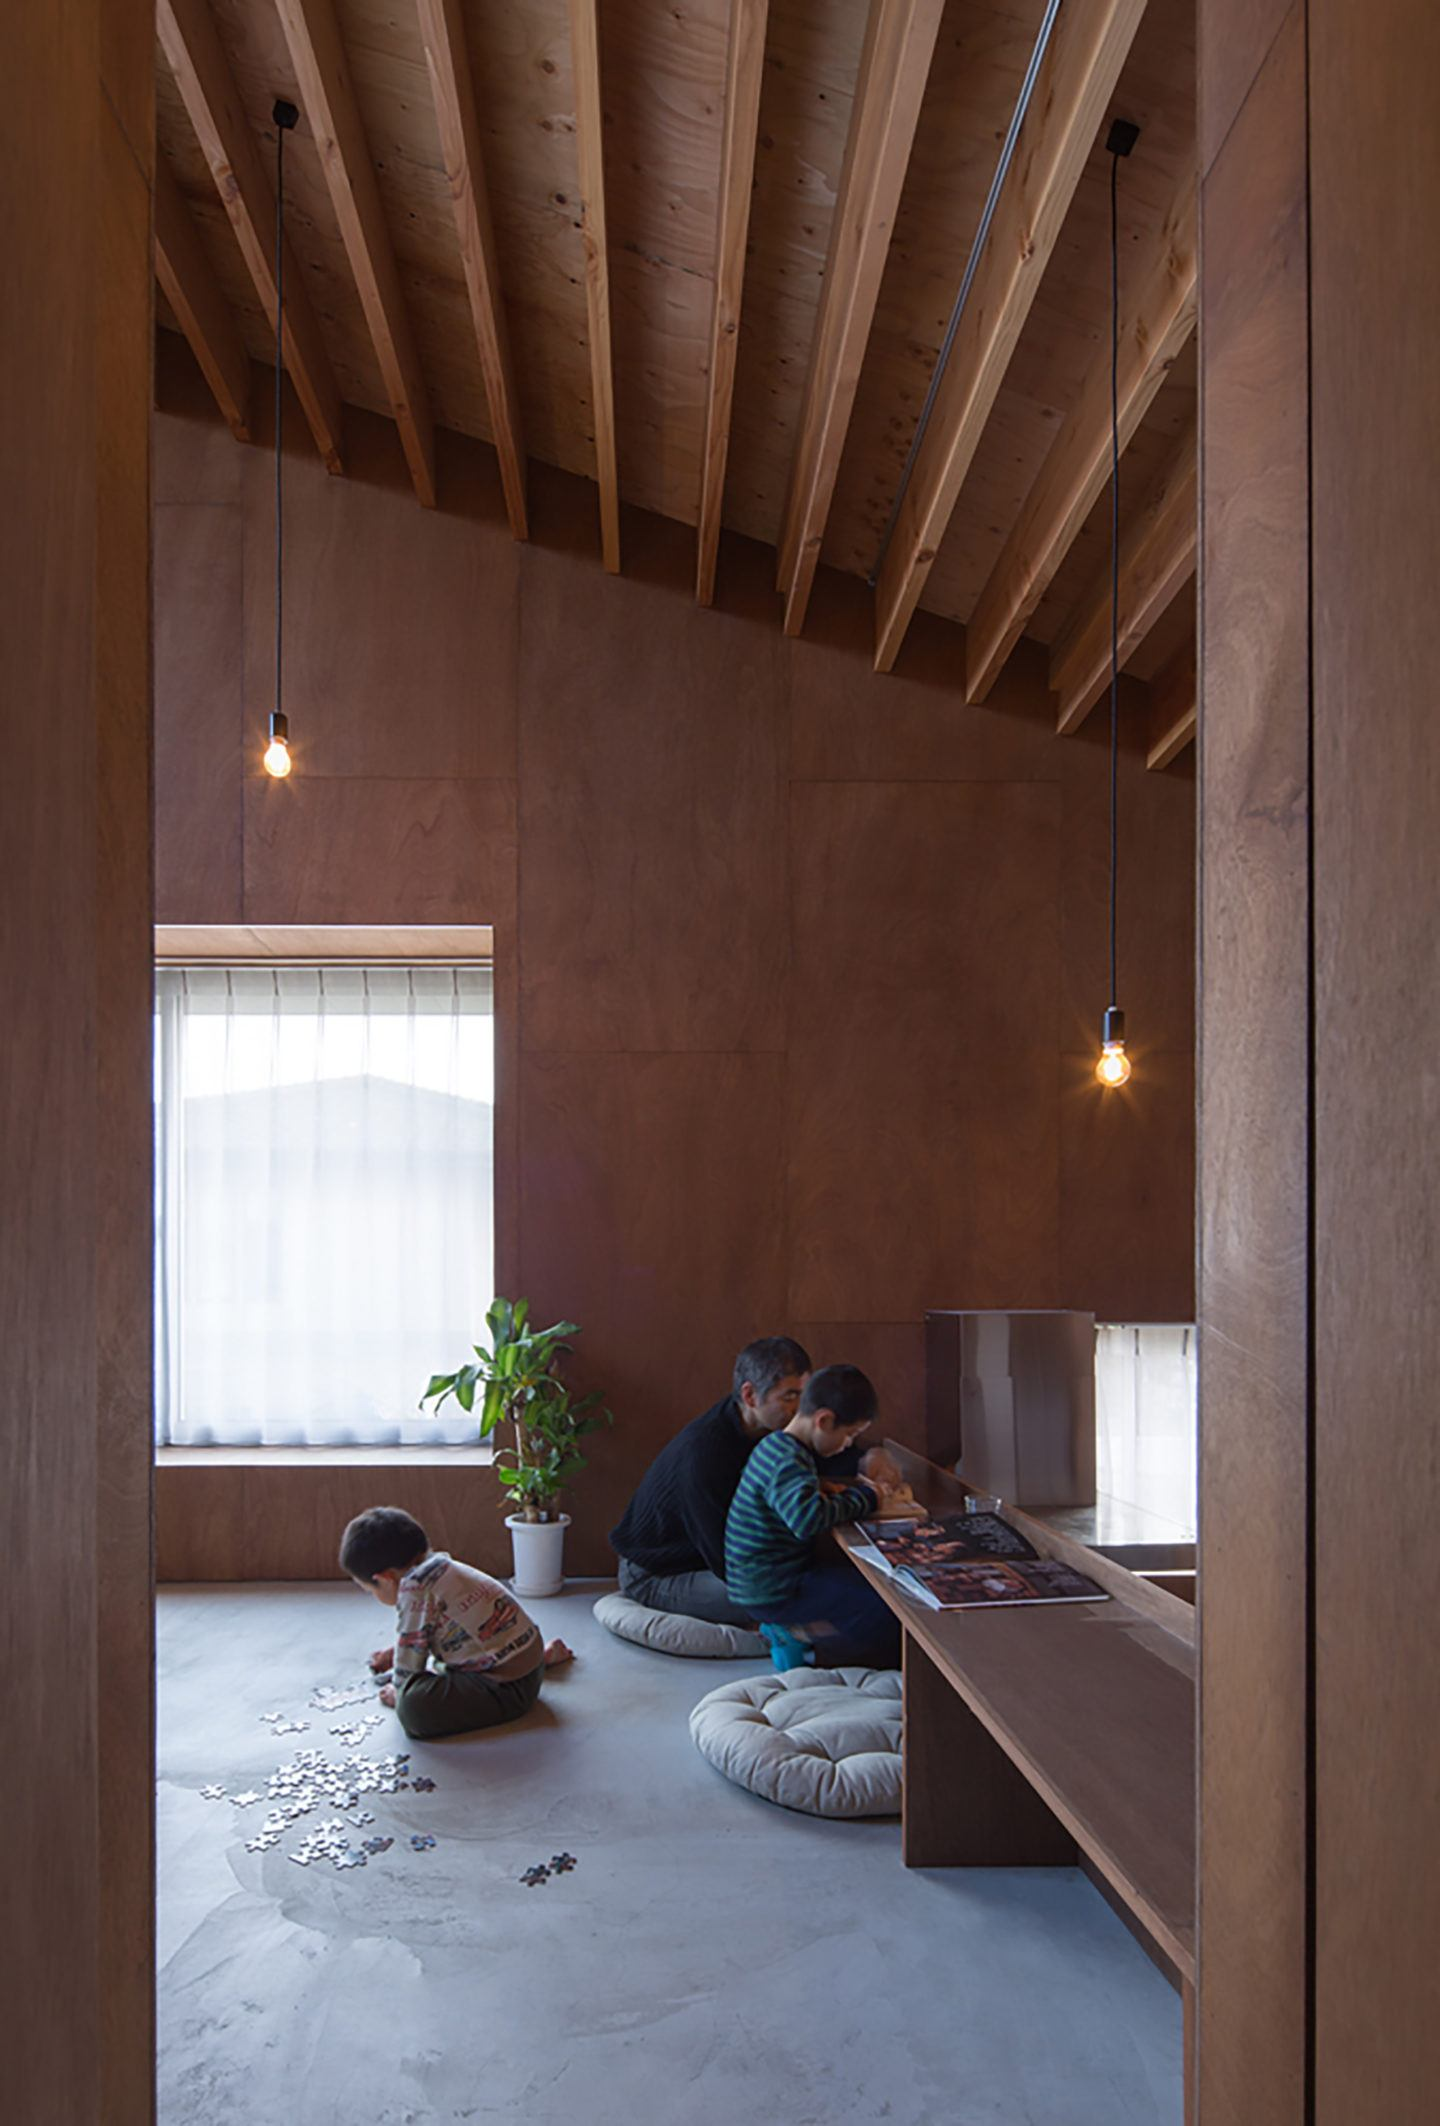 IGNANT-Architecture-Matsuyama-And-Associates-Layer-House-10